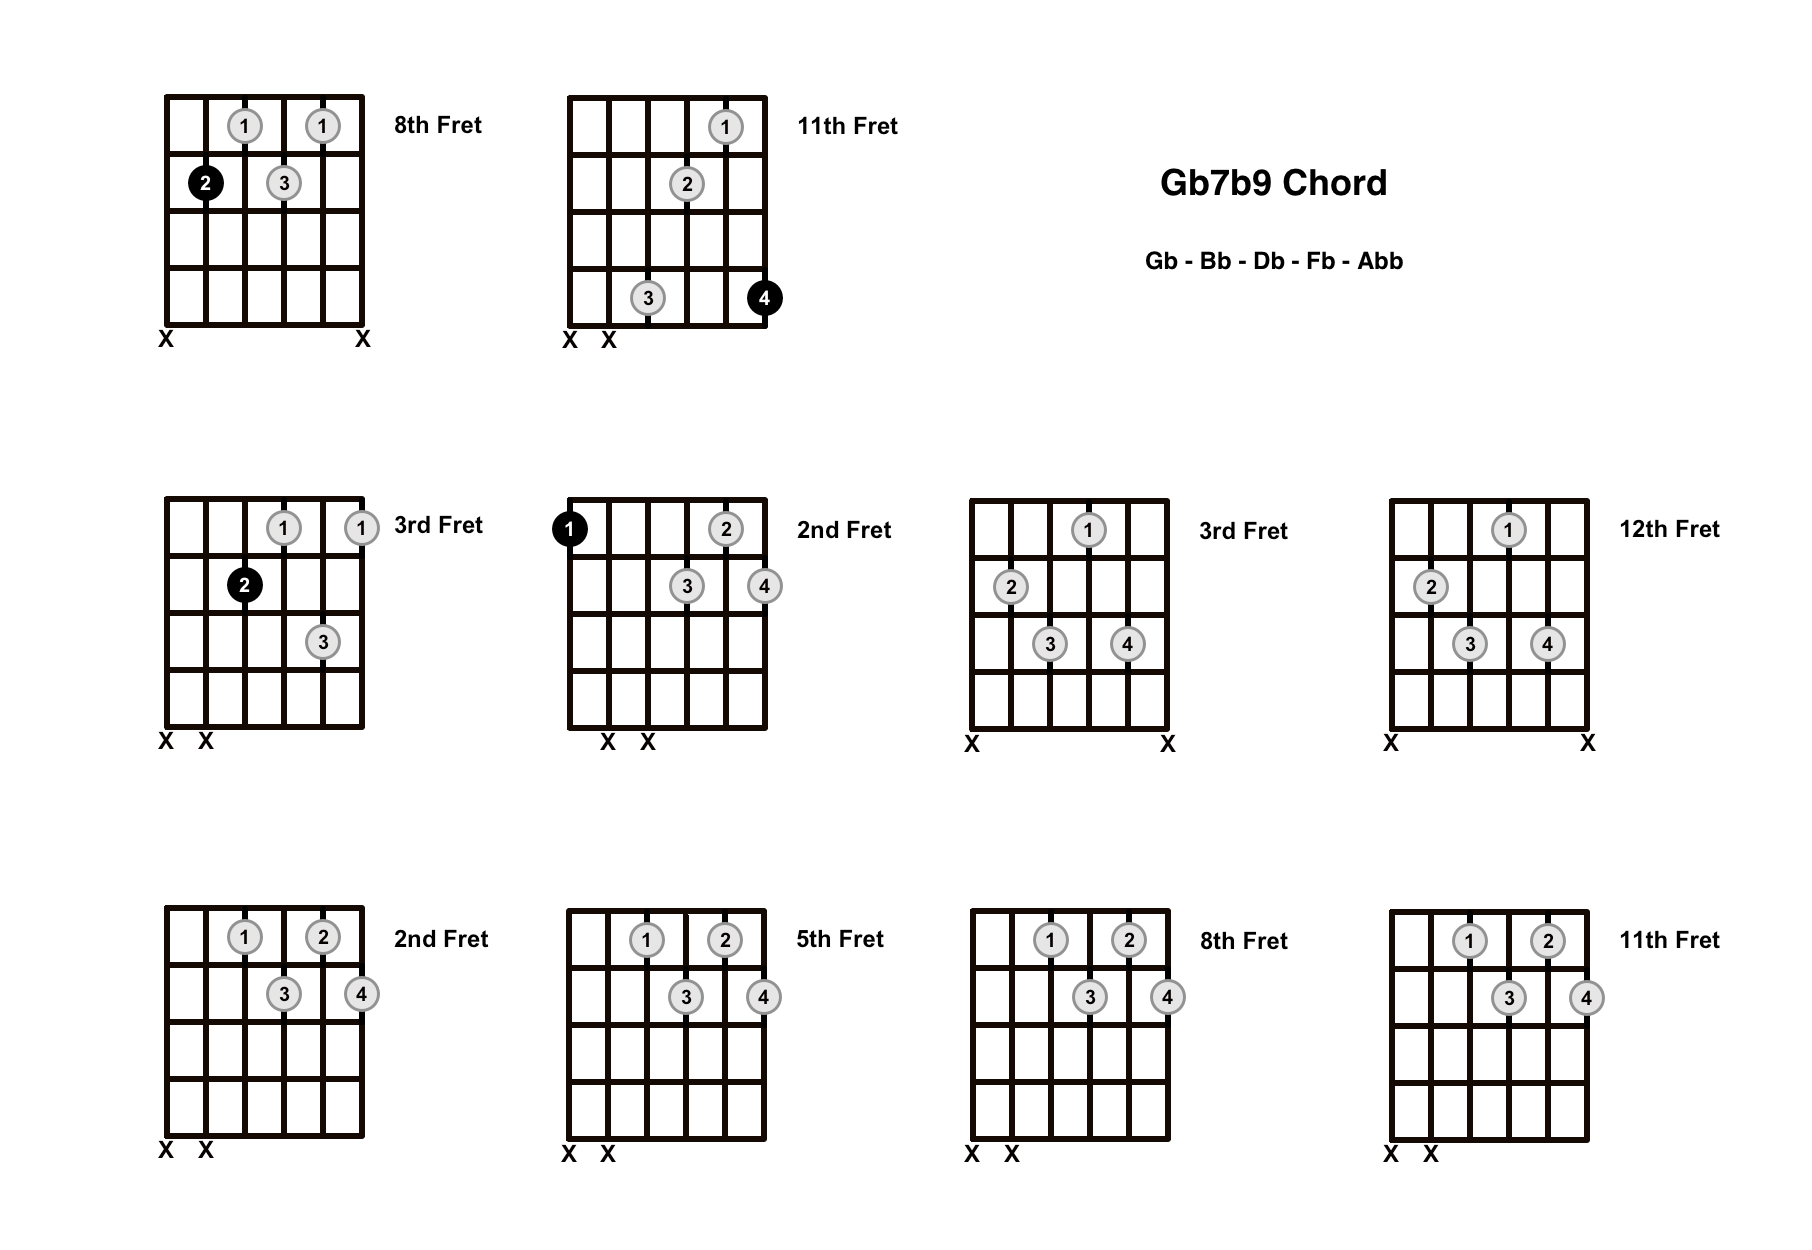 Gb7b9 Chord On The Guitar (G Flat 7 Flat 9) – Diagrams, Finger Positions and Theory